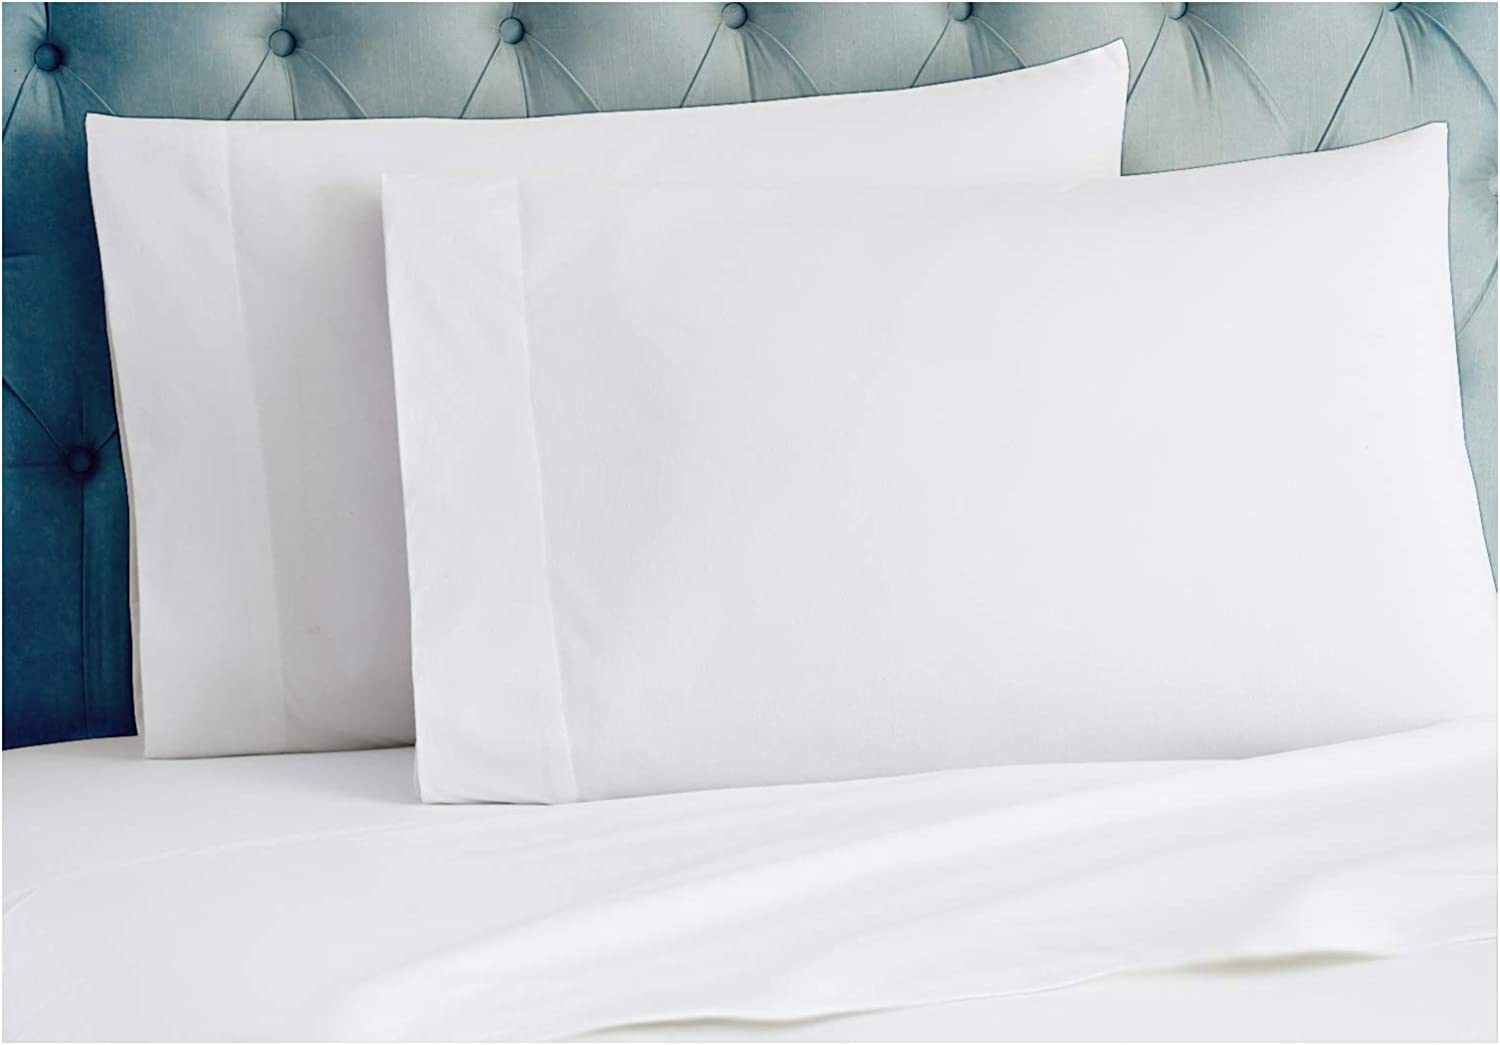 Tissaj King Size Pillow Covers - 2 Cases Set - Ultra White Color Color - 100% GOTS Certified Organic Cotton - 300 TC Thread Count - for Sleeping on Queen, King, California King Size Beds - 4 inch Hem